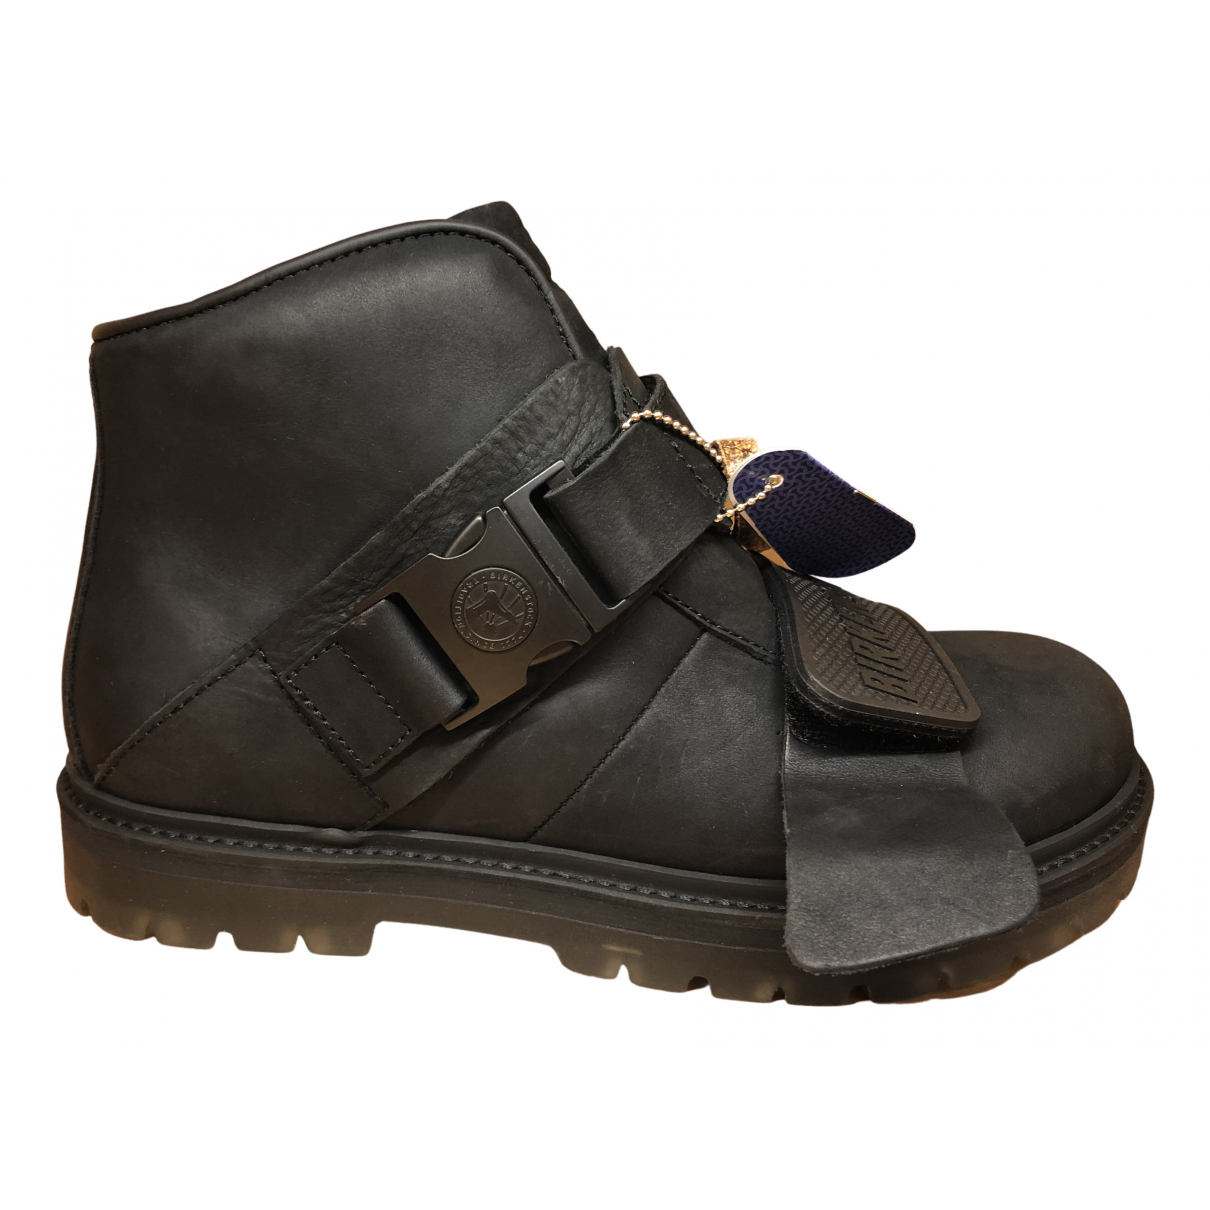 Rick Owens N Black Leather Boots for Women 41 EU